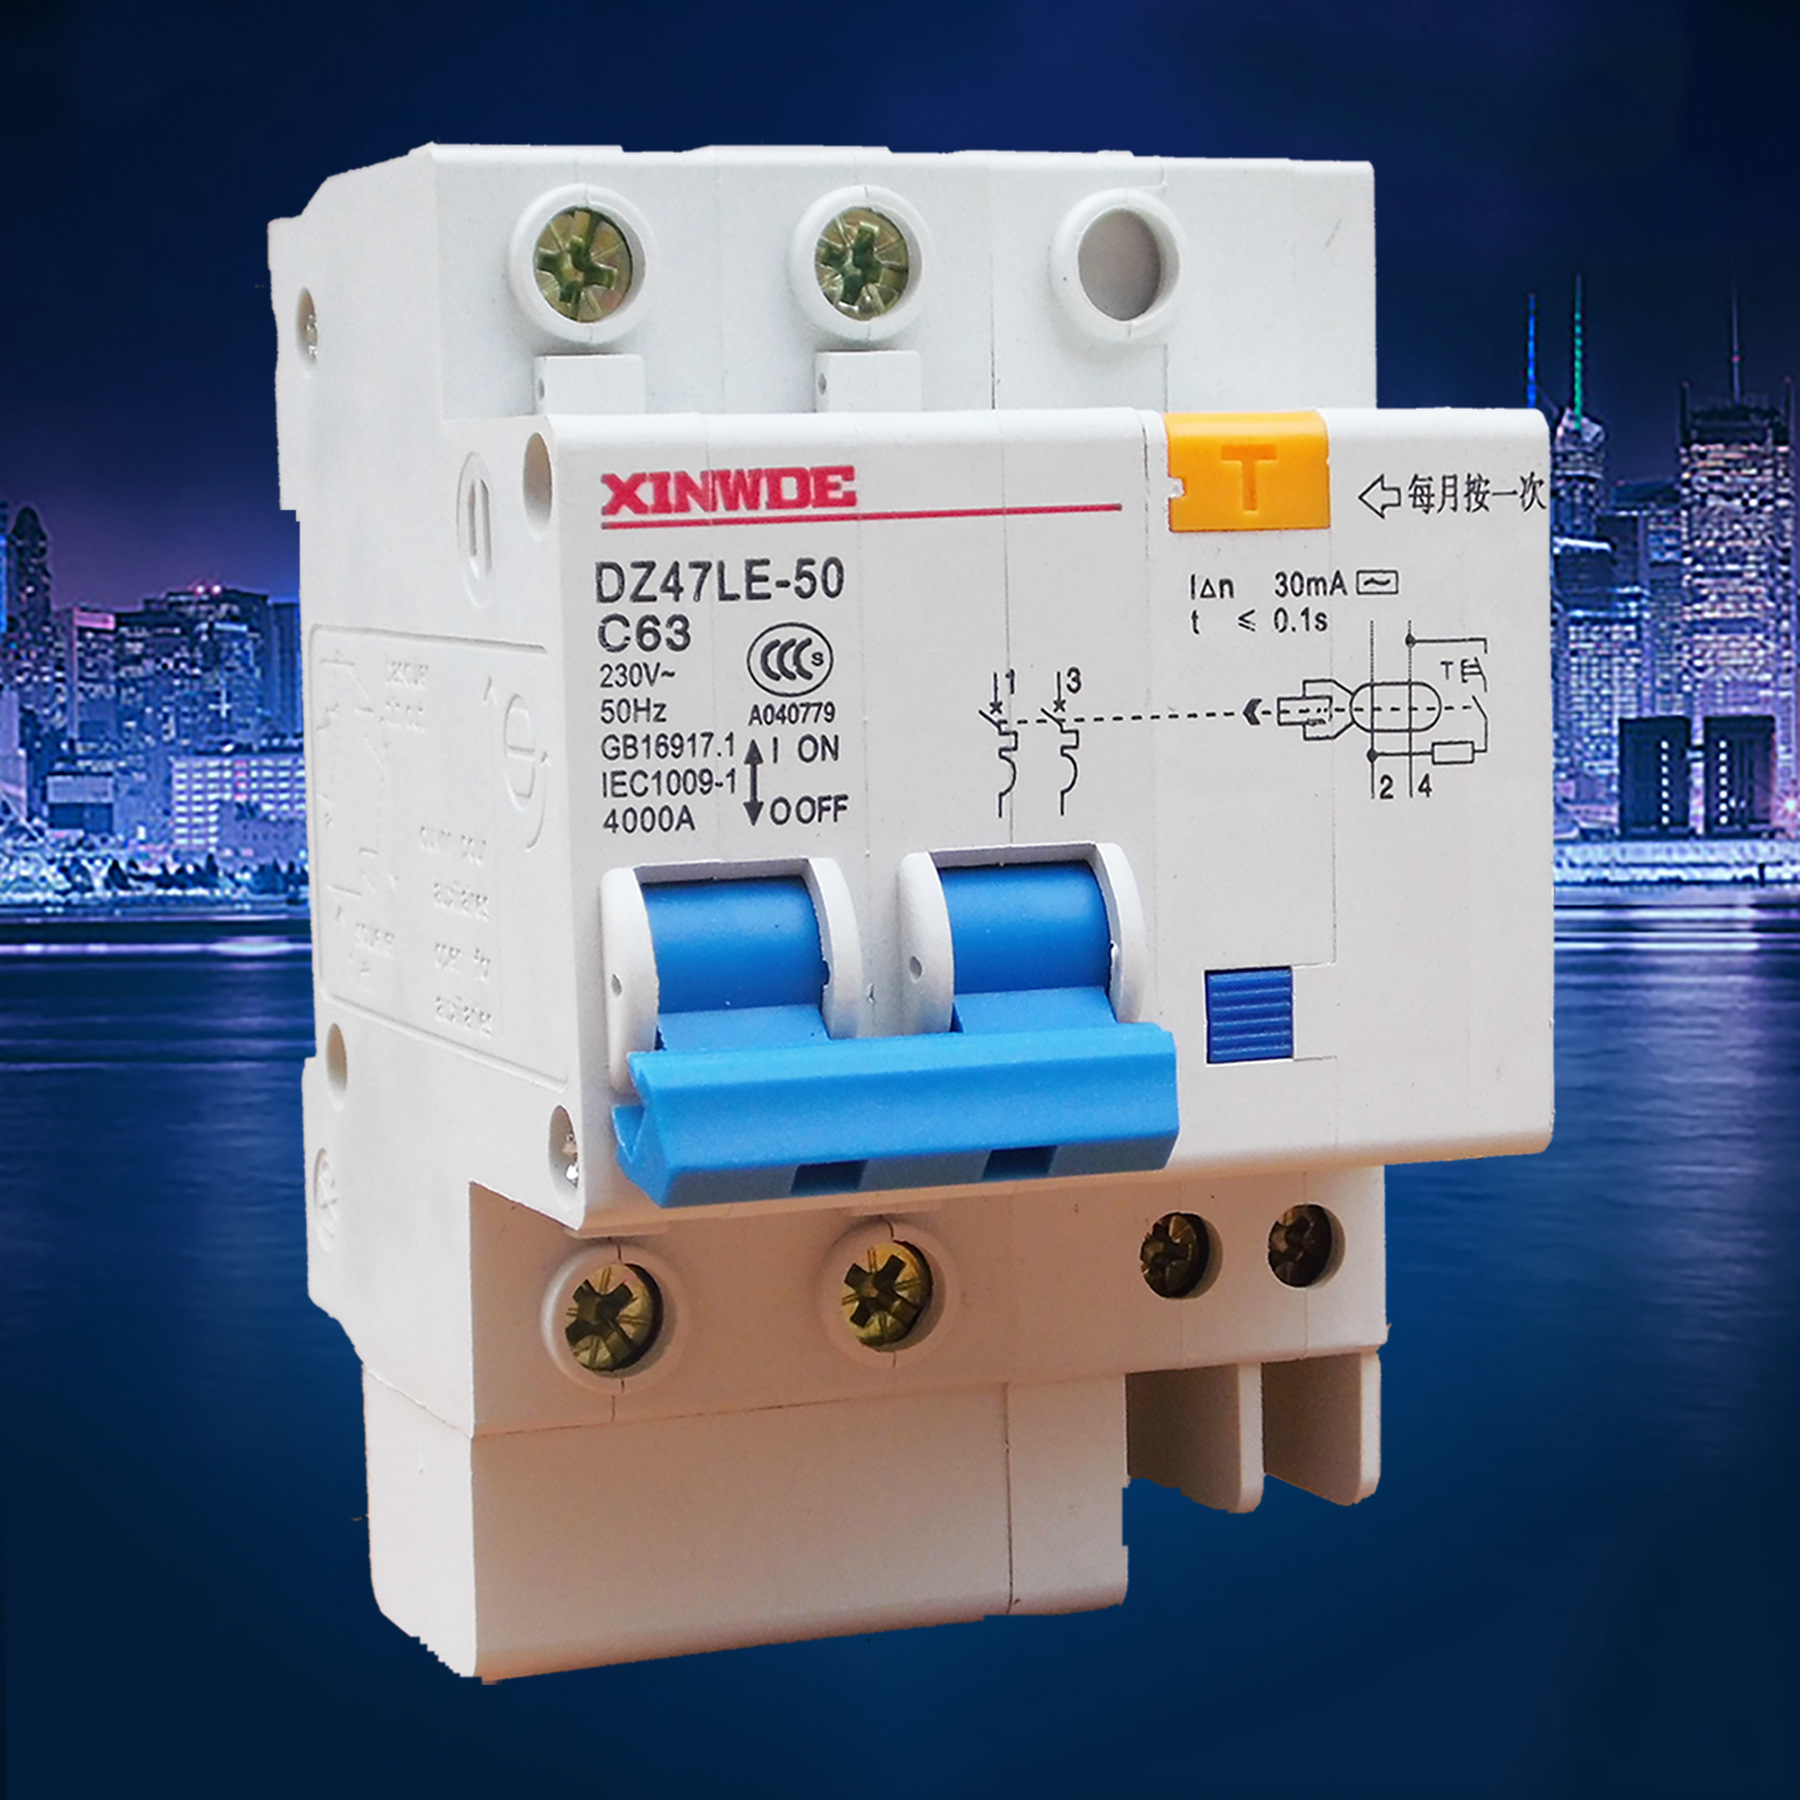 XINWDE Air switch dz47le-63 2p household small leakage protection circuit breaker 20A / 40A anti ele